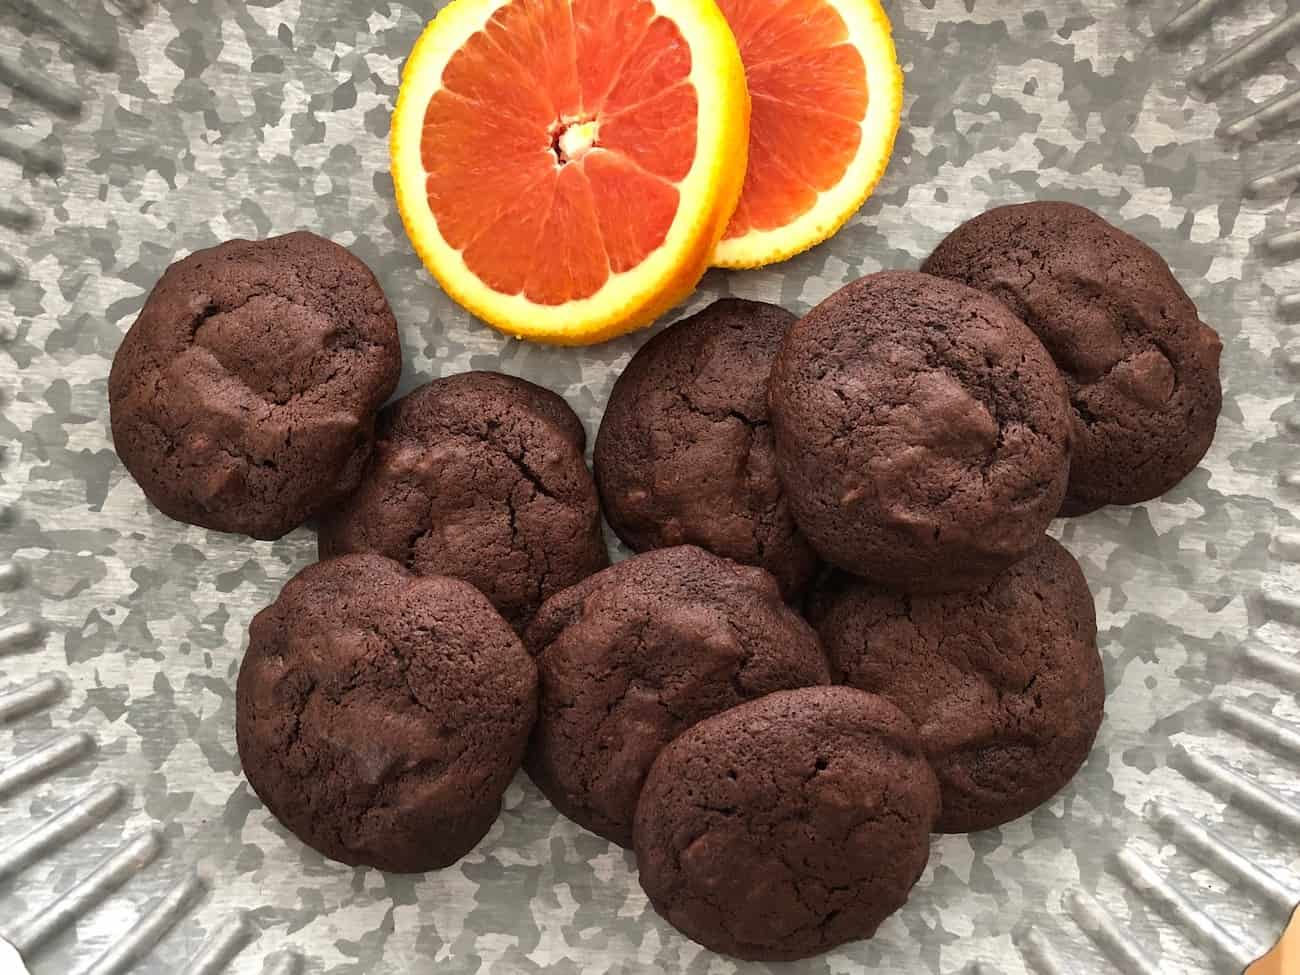 chocolate orange chocolate chip cookies on galvanized metal stand top viewJPG